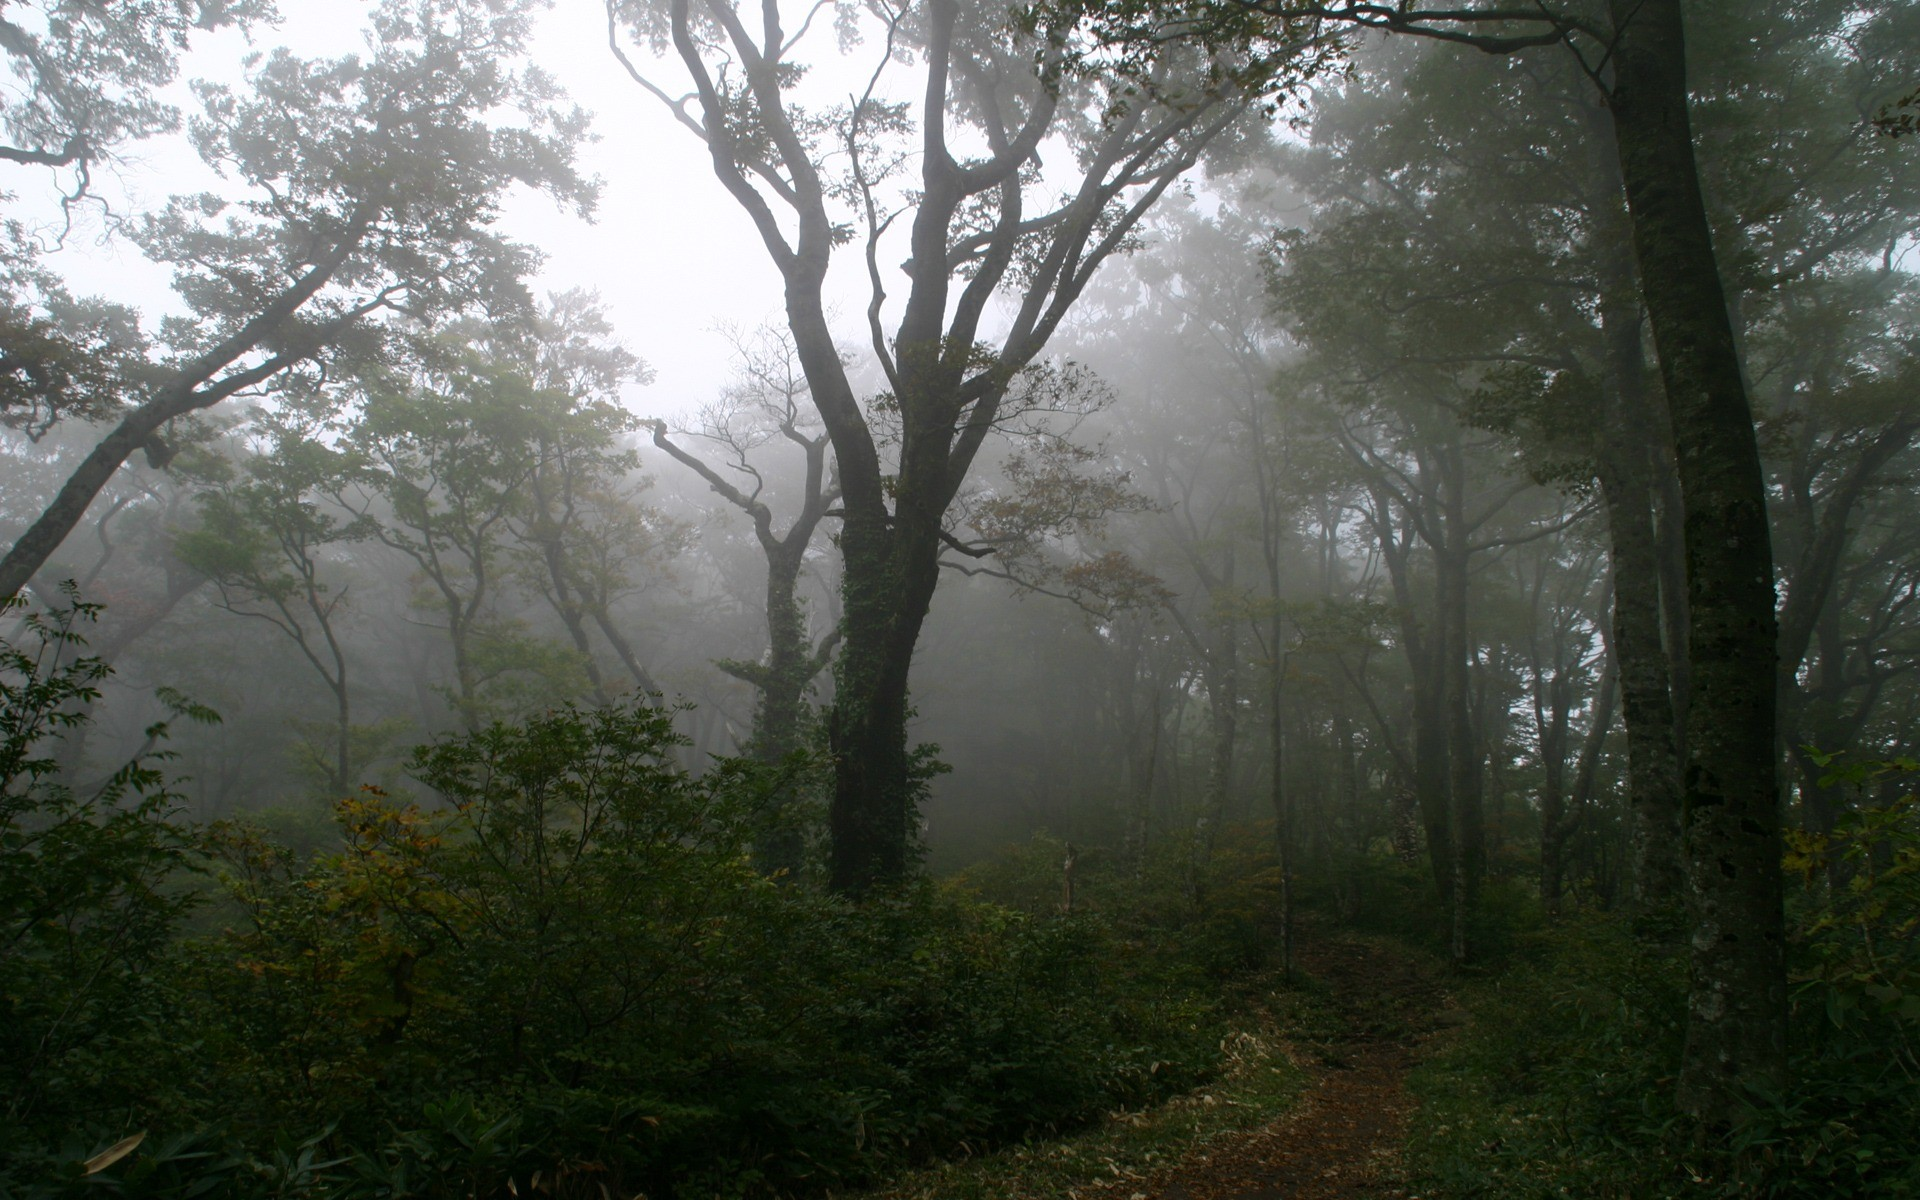 Foggy Forest Wallpaper Landscape Nature Wallpapers